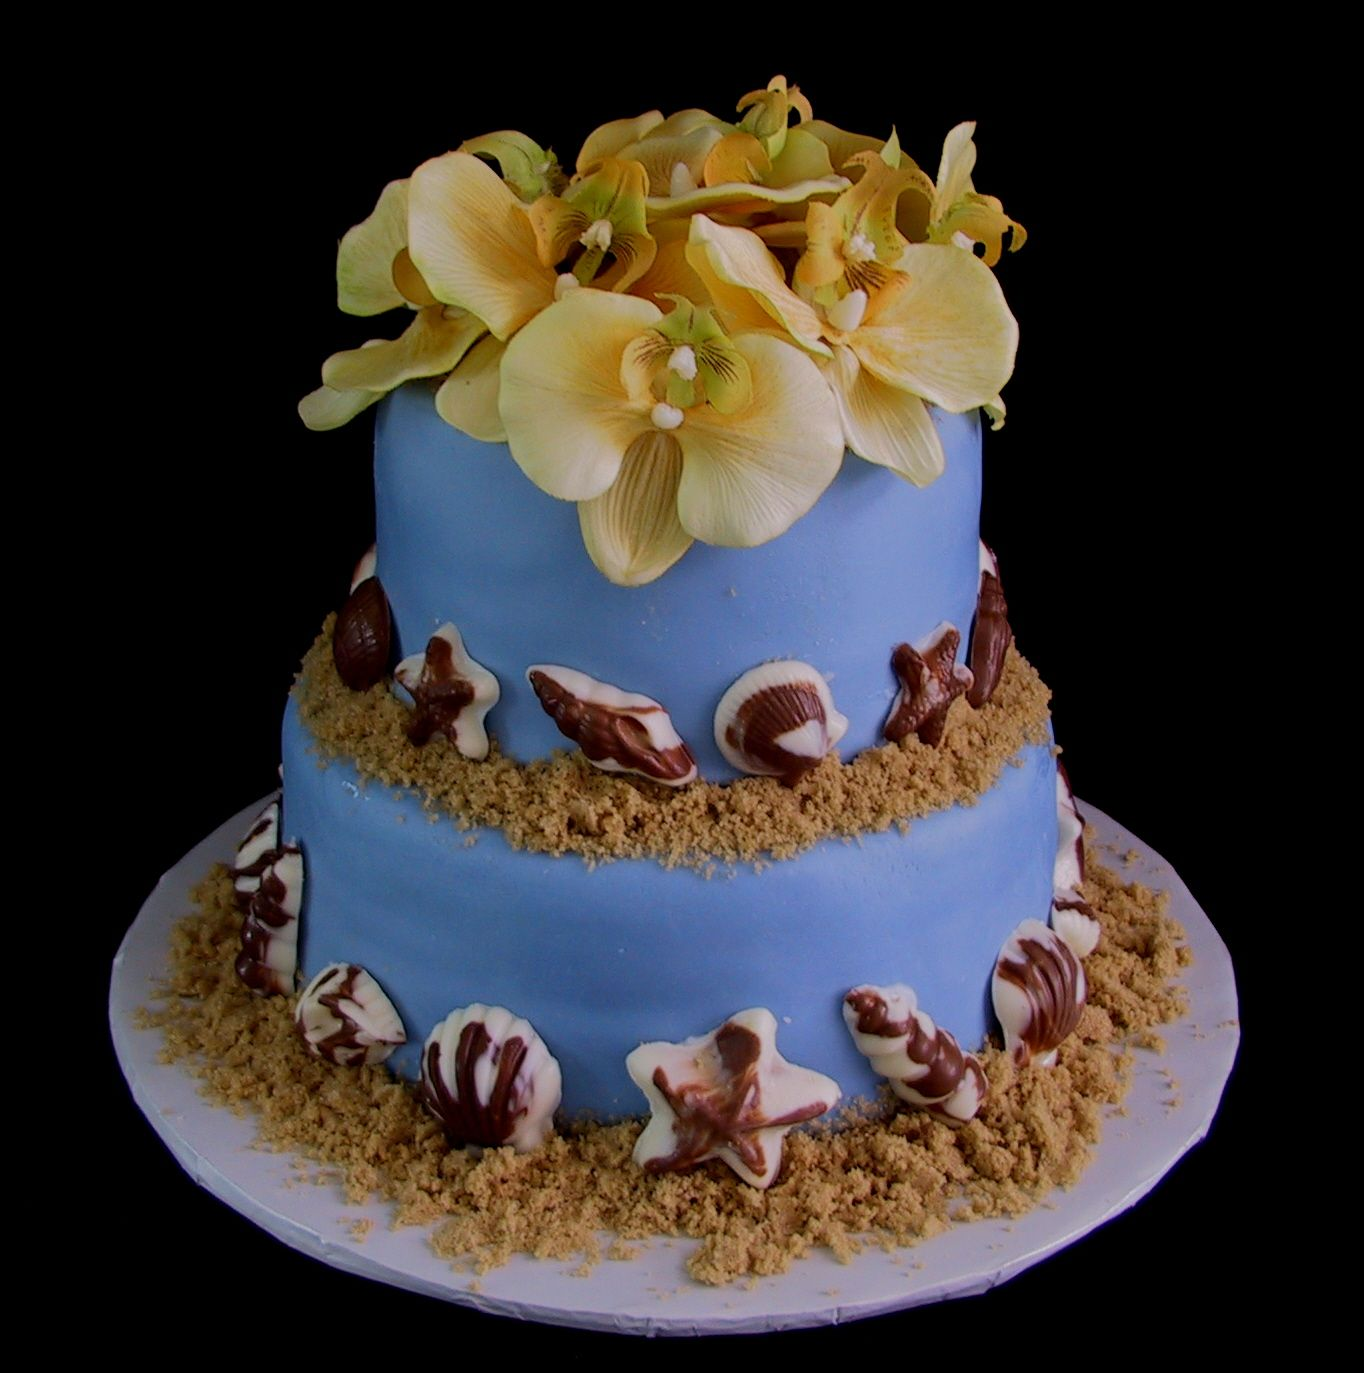 Fondant Seashell Birthday Cake With Orchids Perfect For Your Next